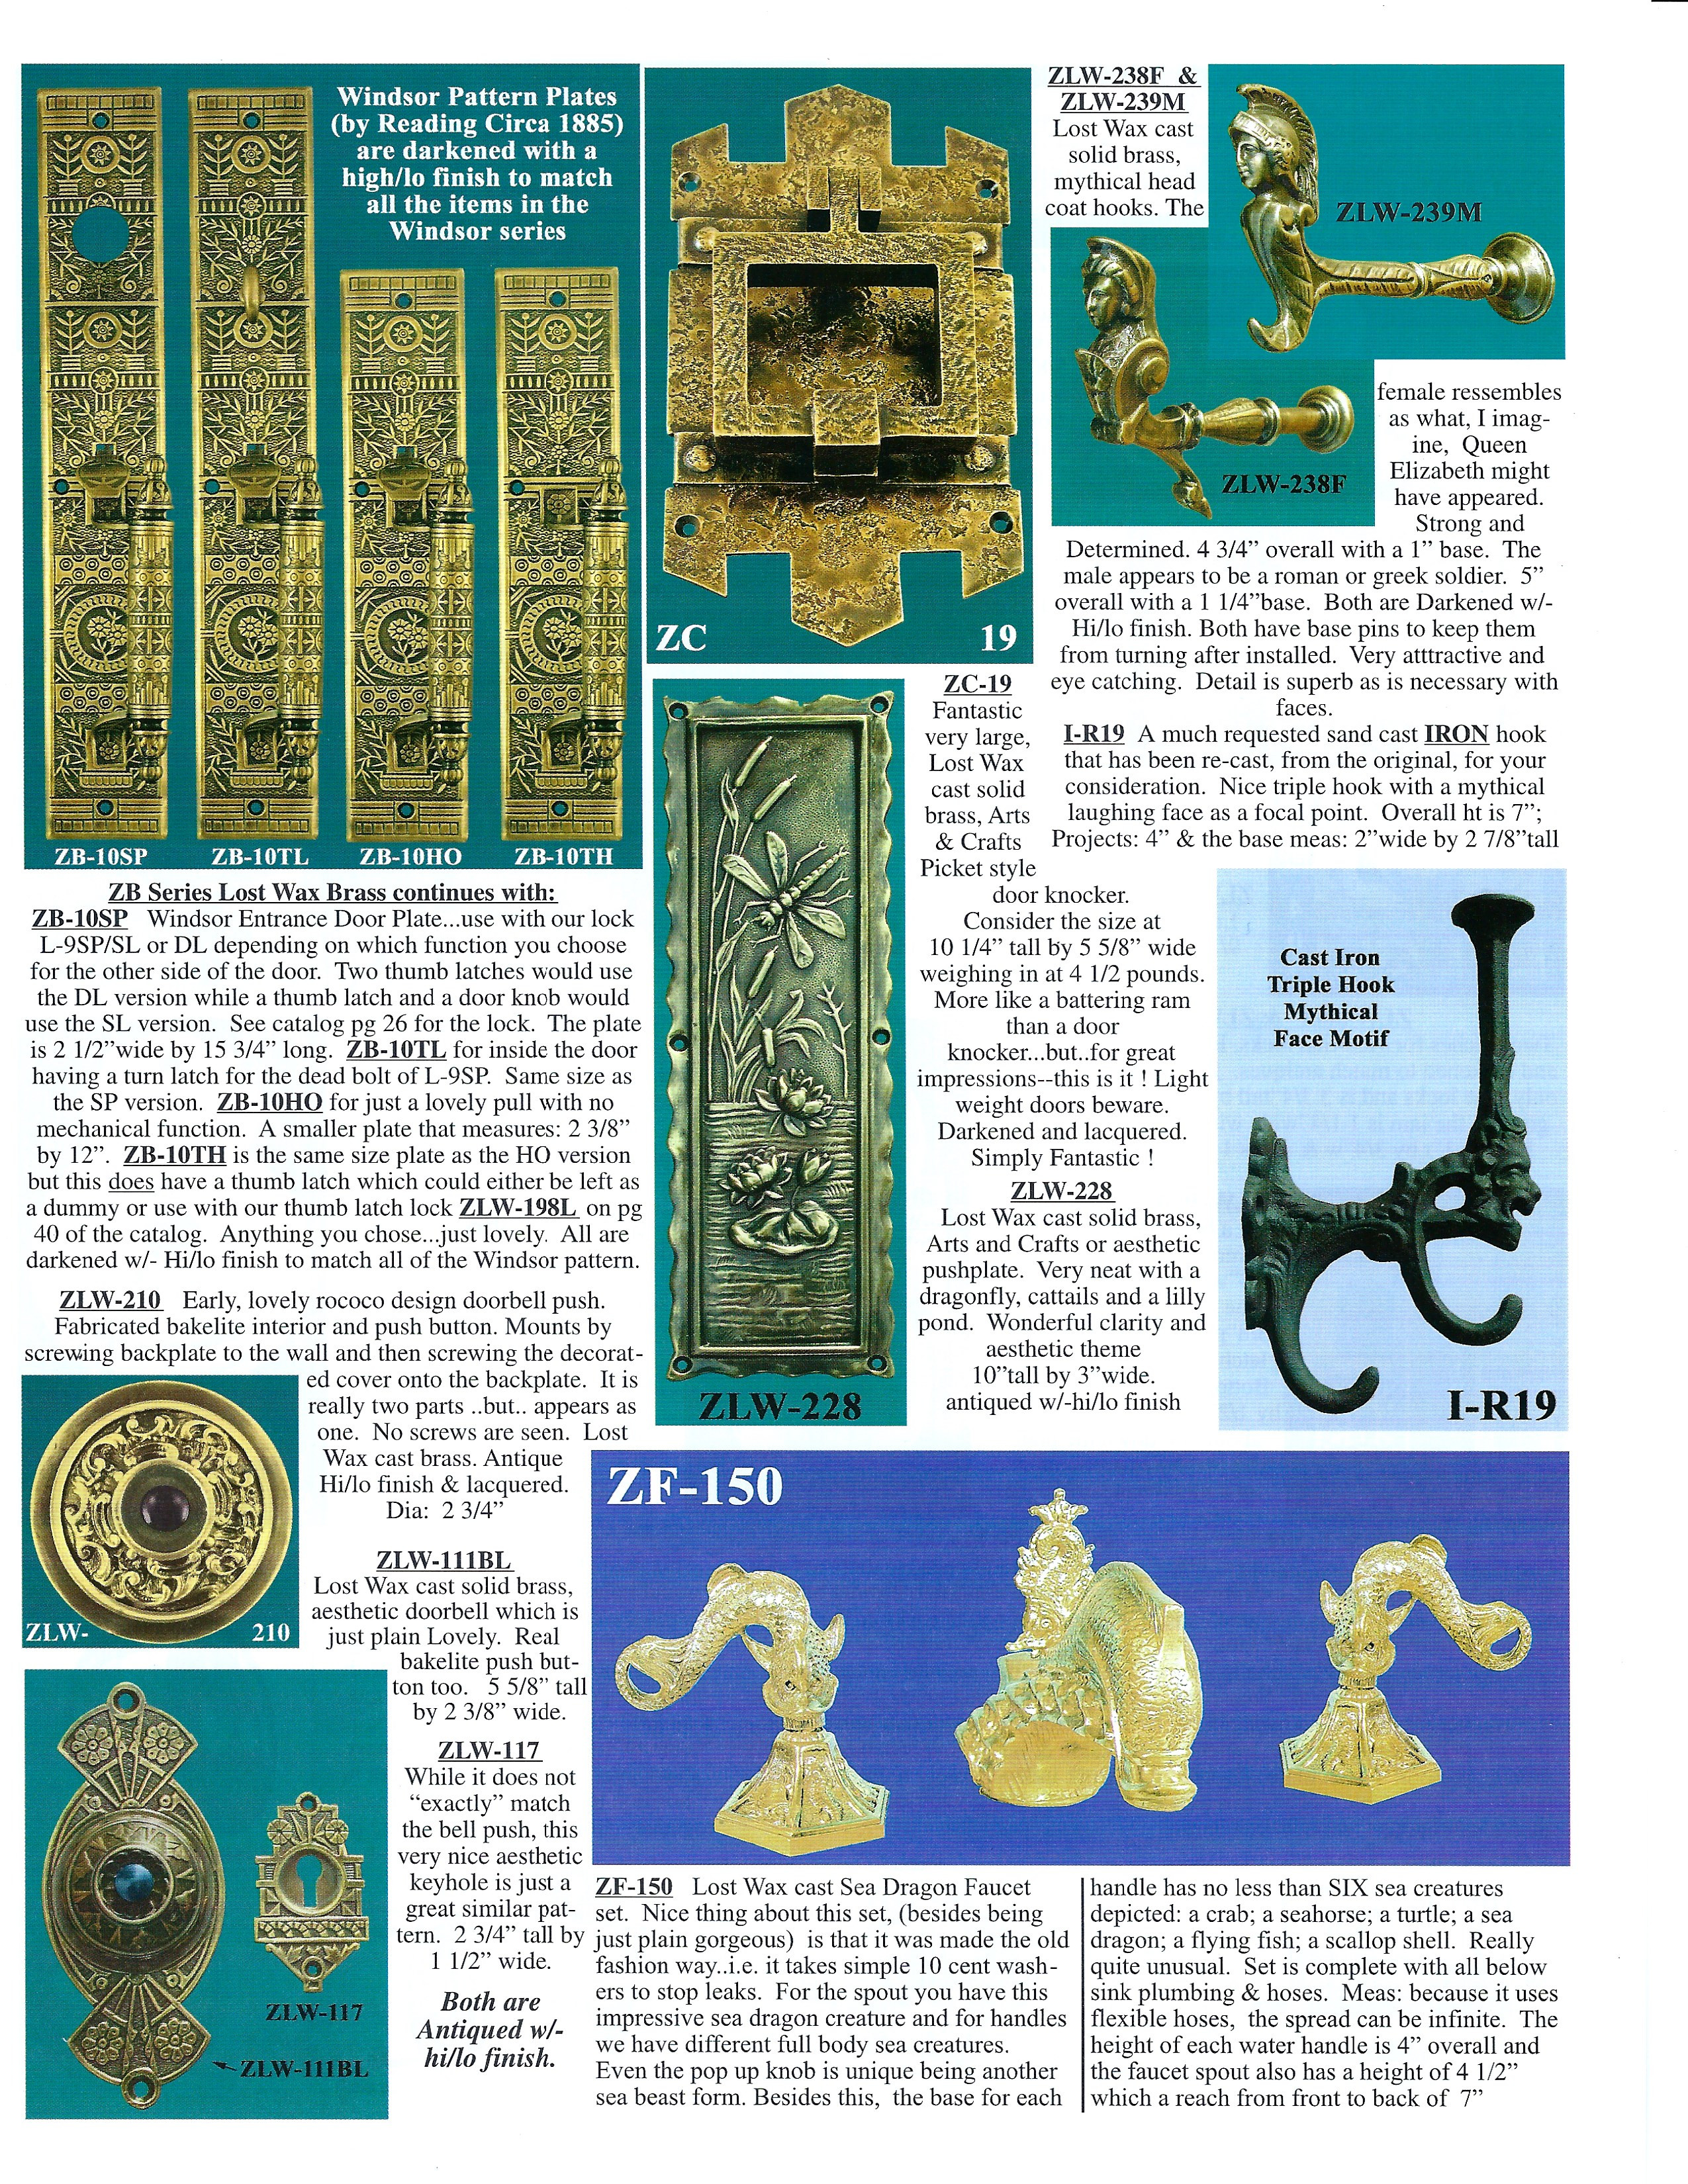 Catalog page 59